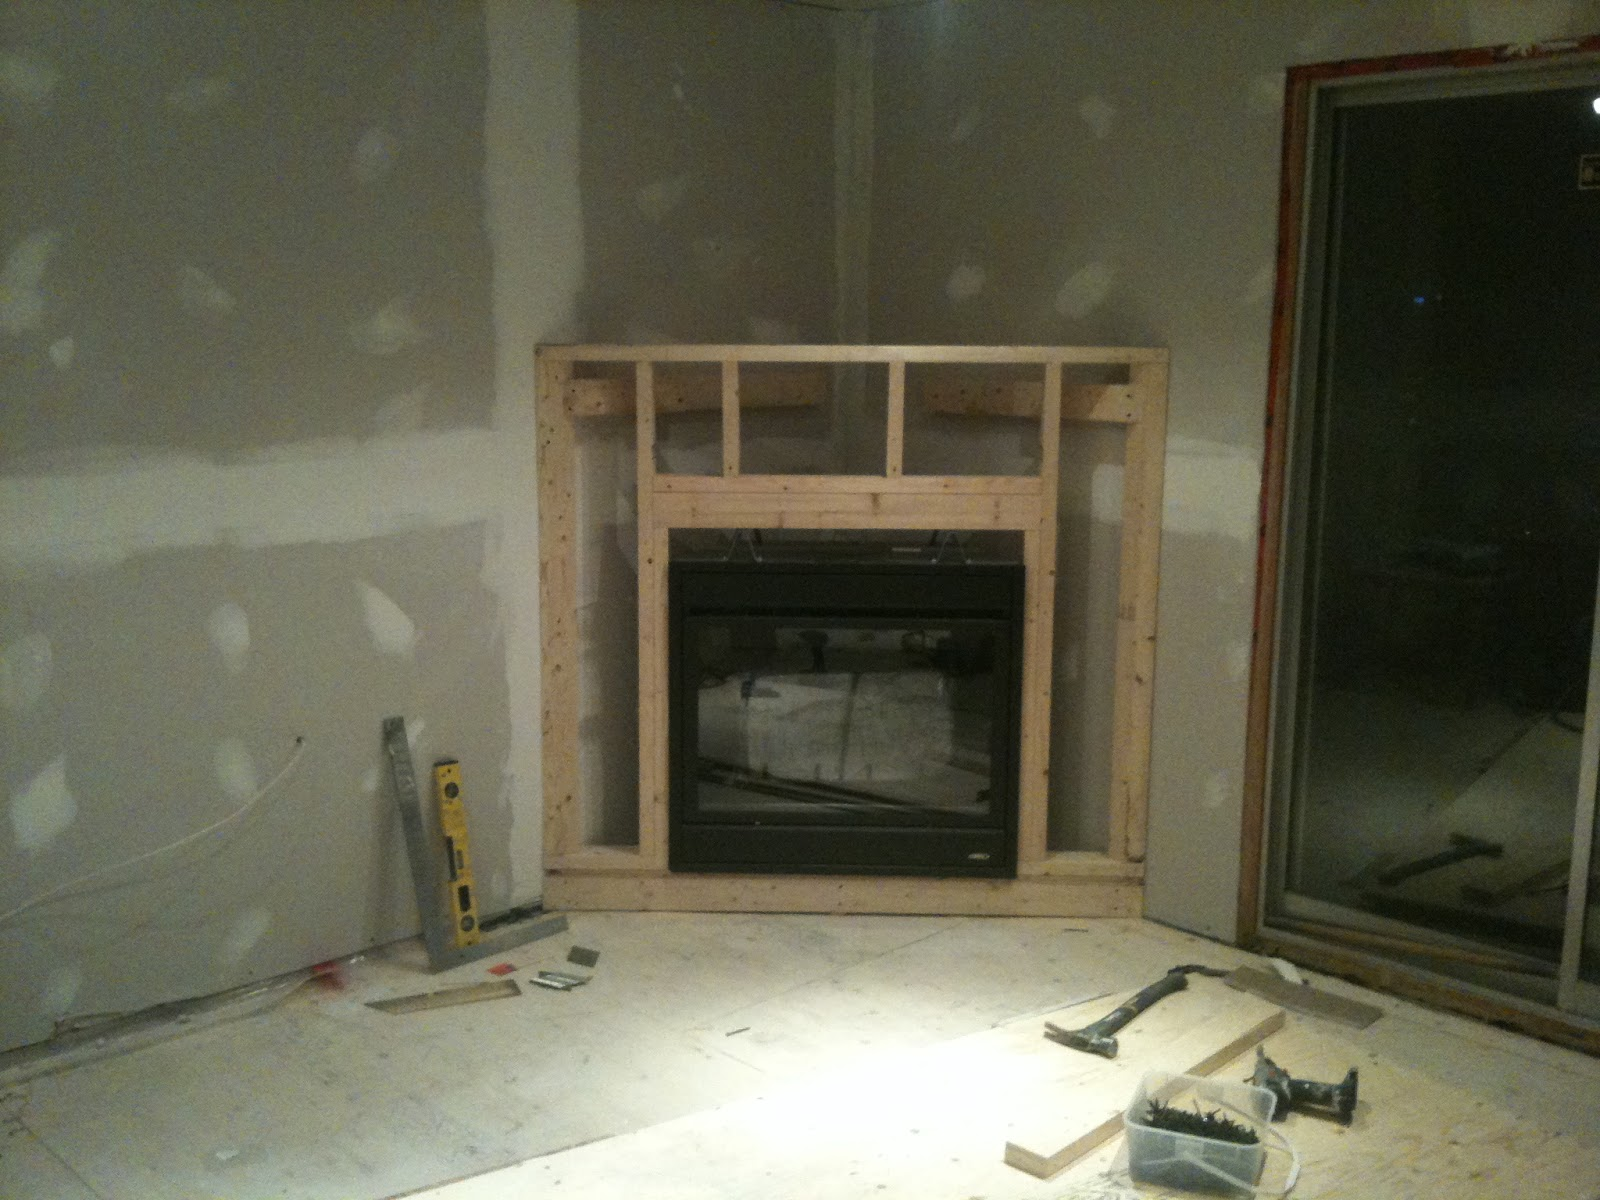 S. & R. GAS FIREPLACES NEWARK  Fireplaces